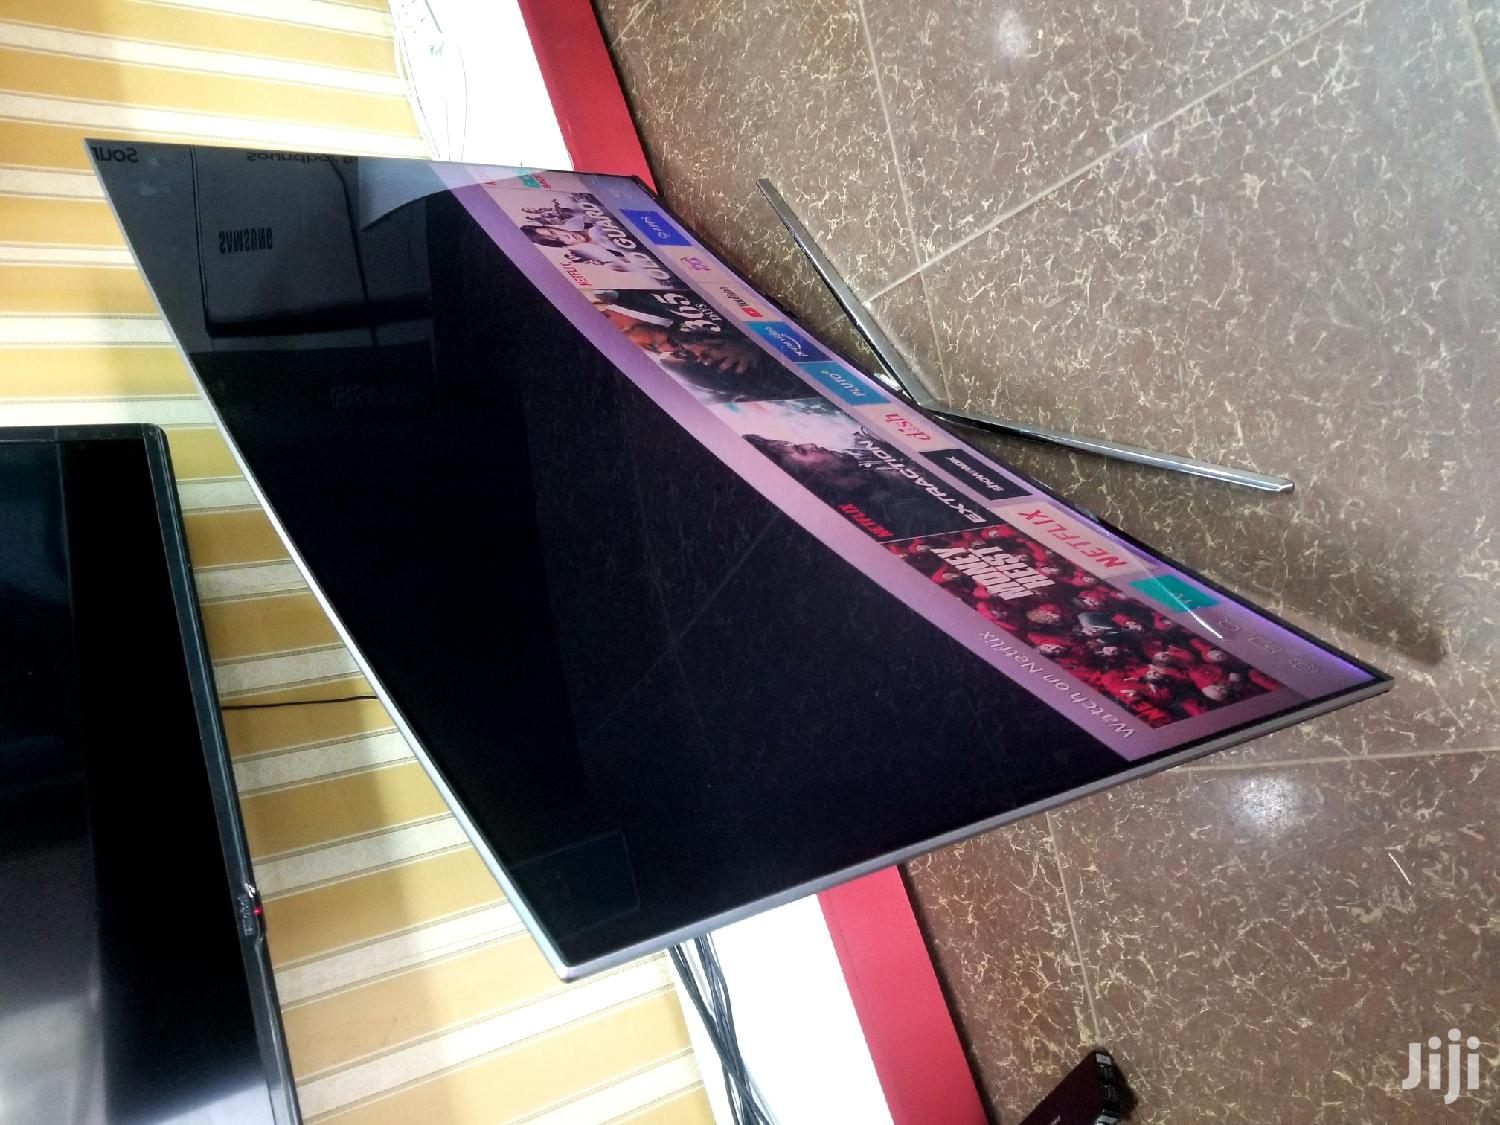 55inches QLED Series 9 Curved Samsung